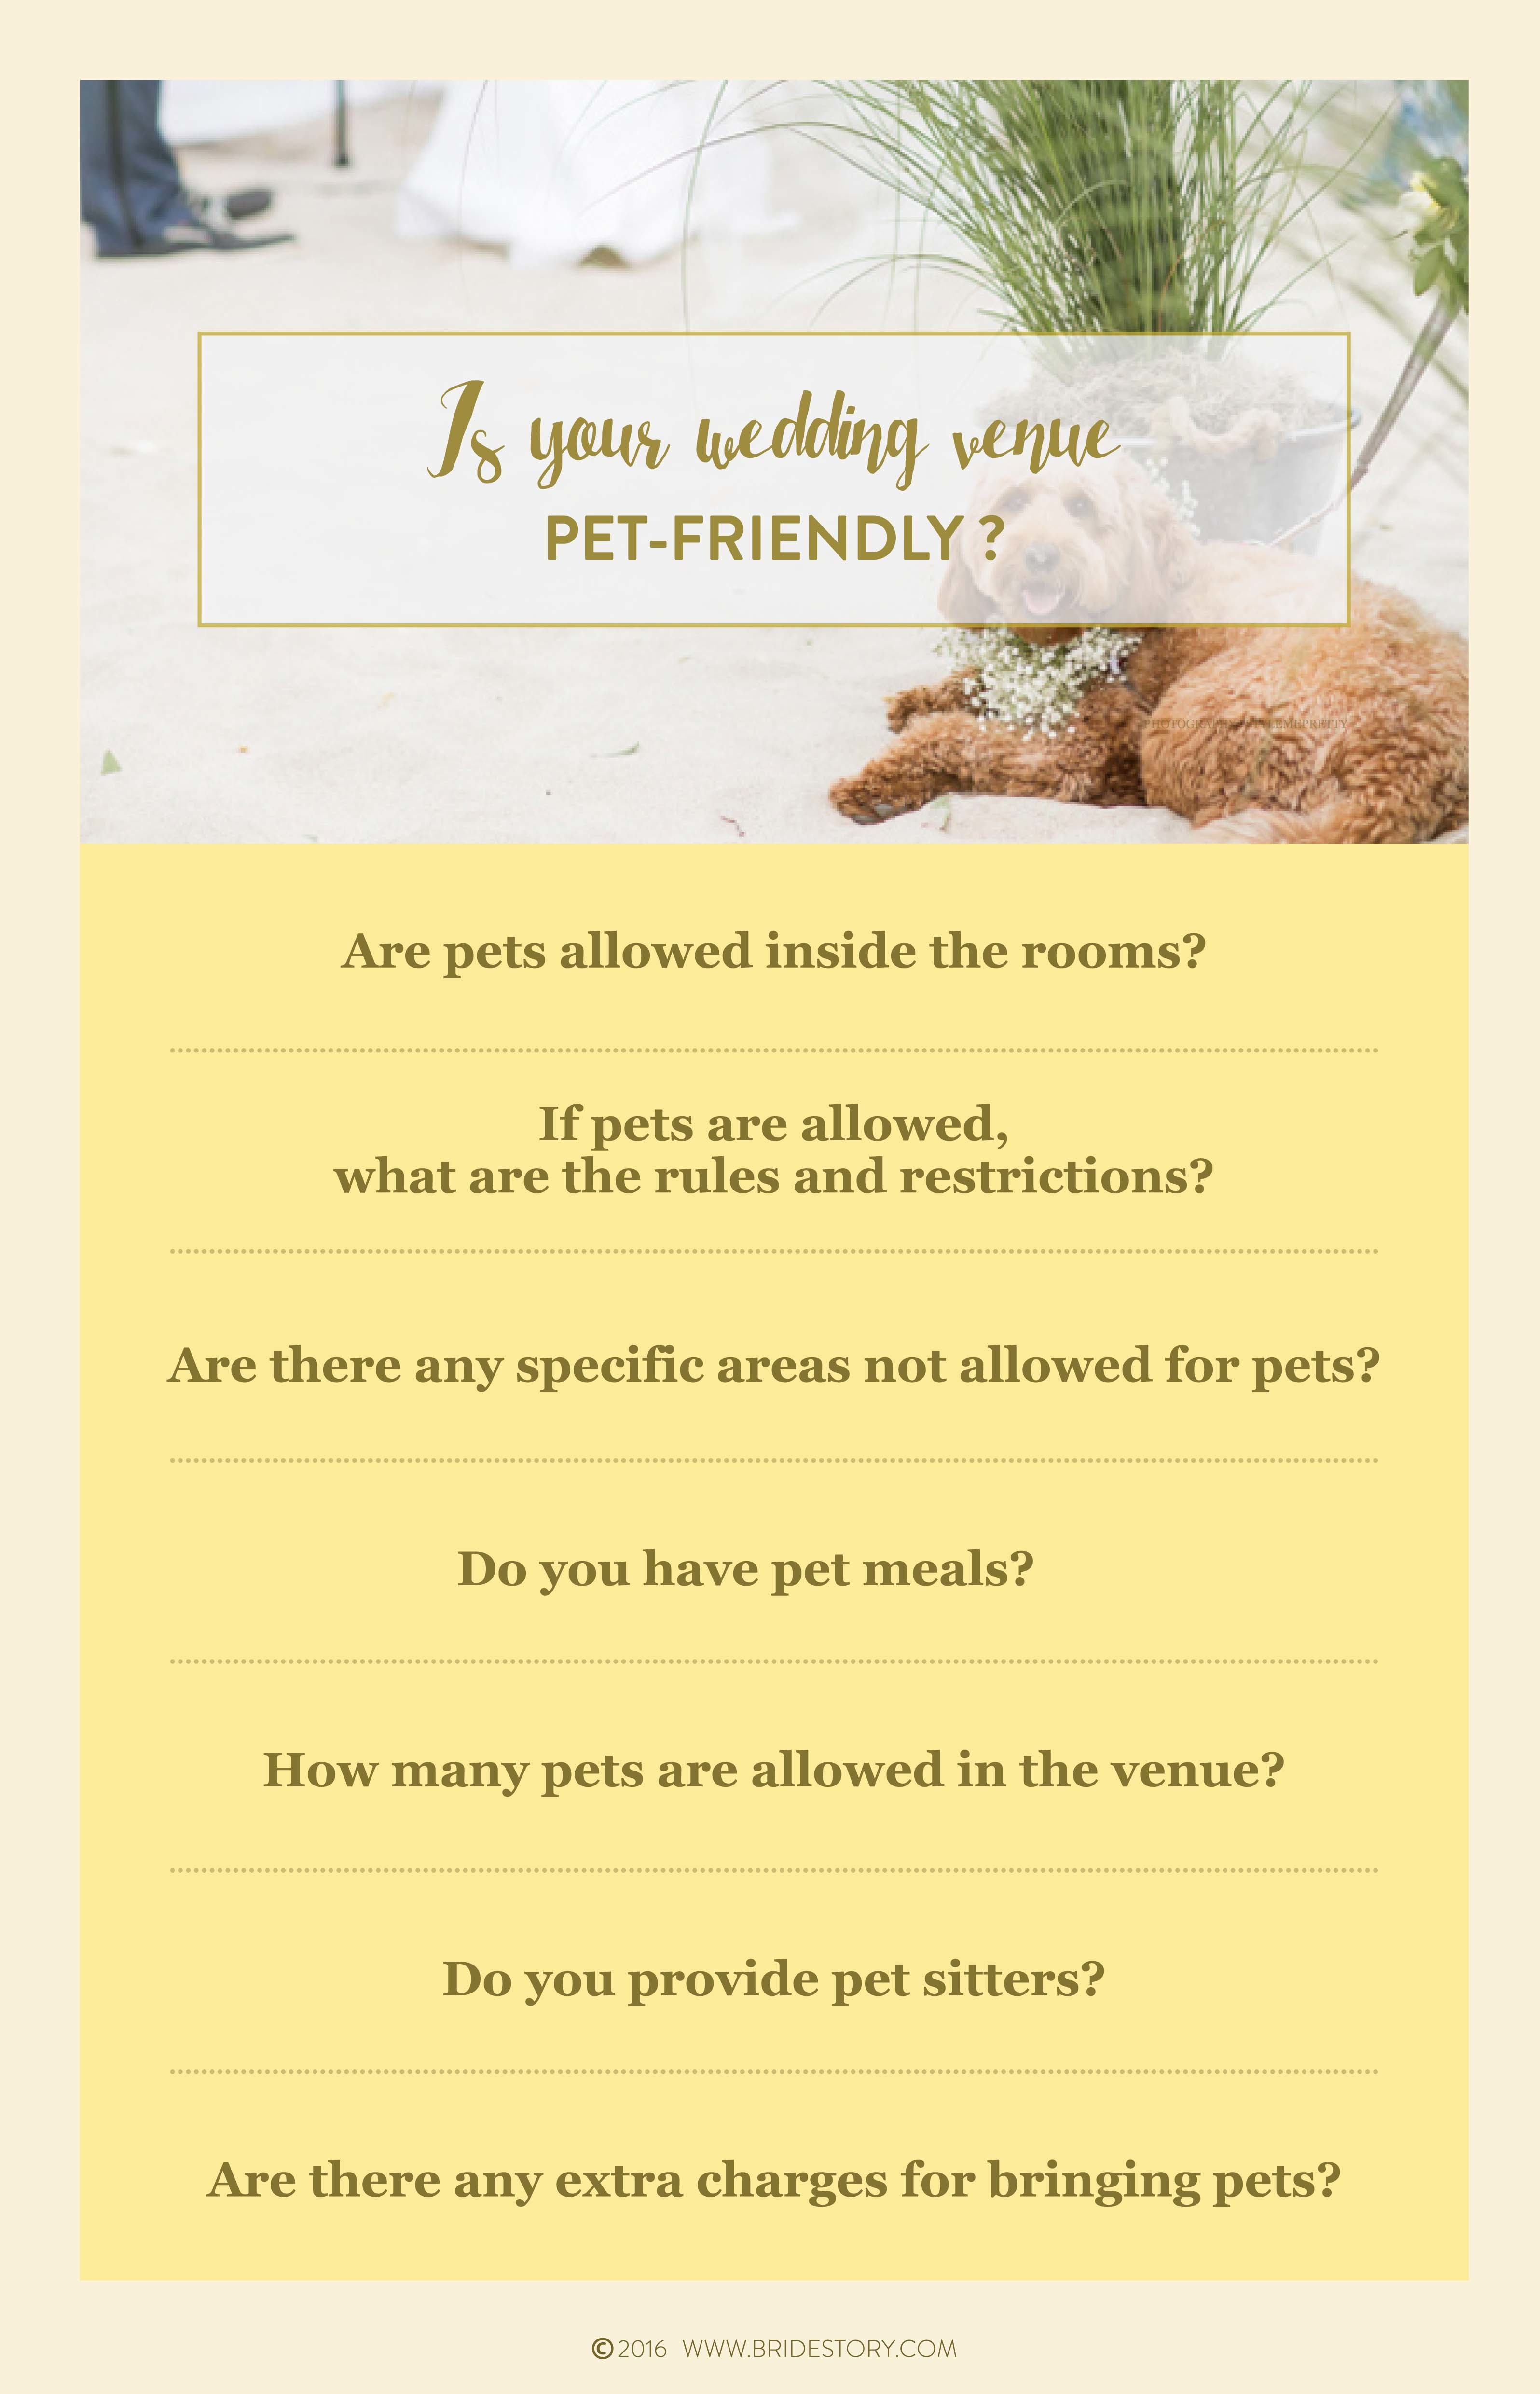 How to Involve Pets in Your Wedding Image 4